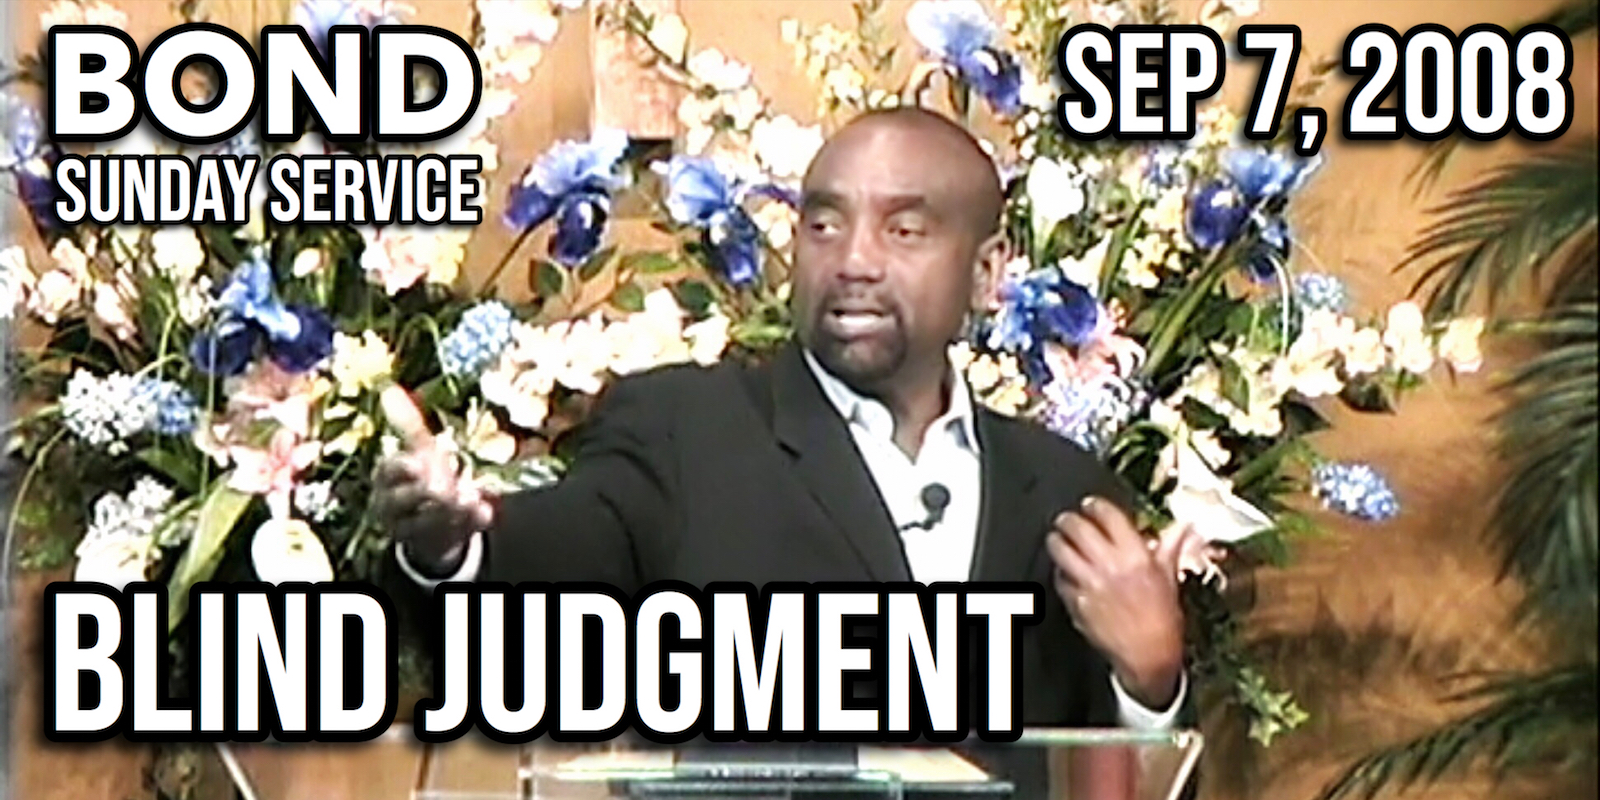 Blind Judgment (Sunday Service, Sep 7, 2008)